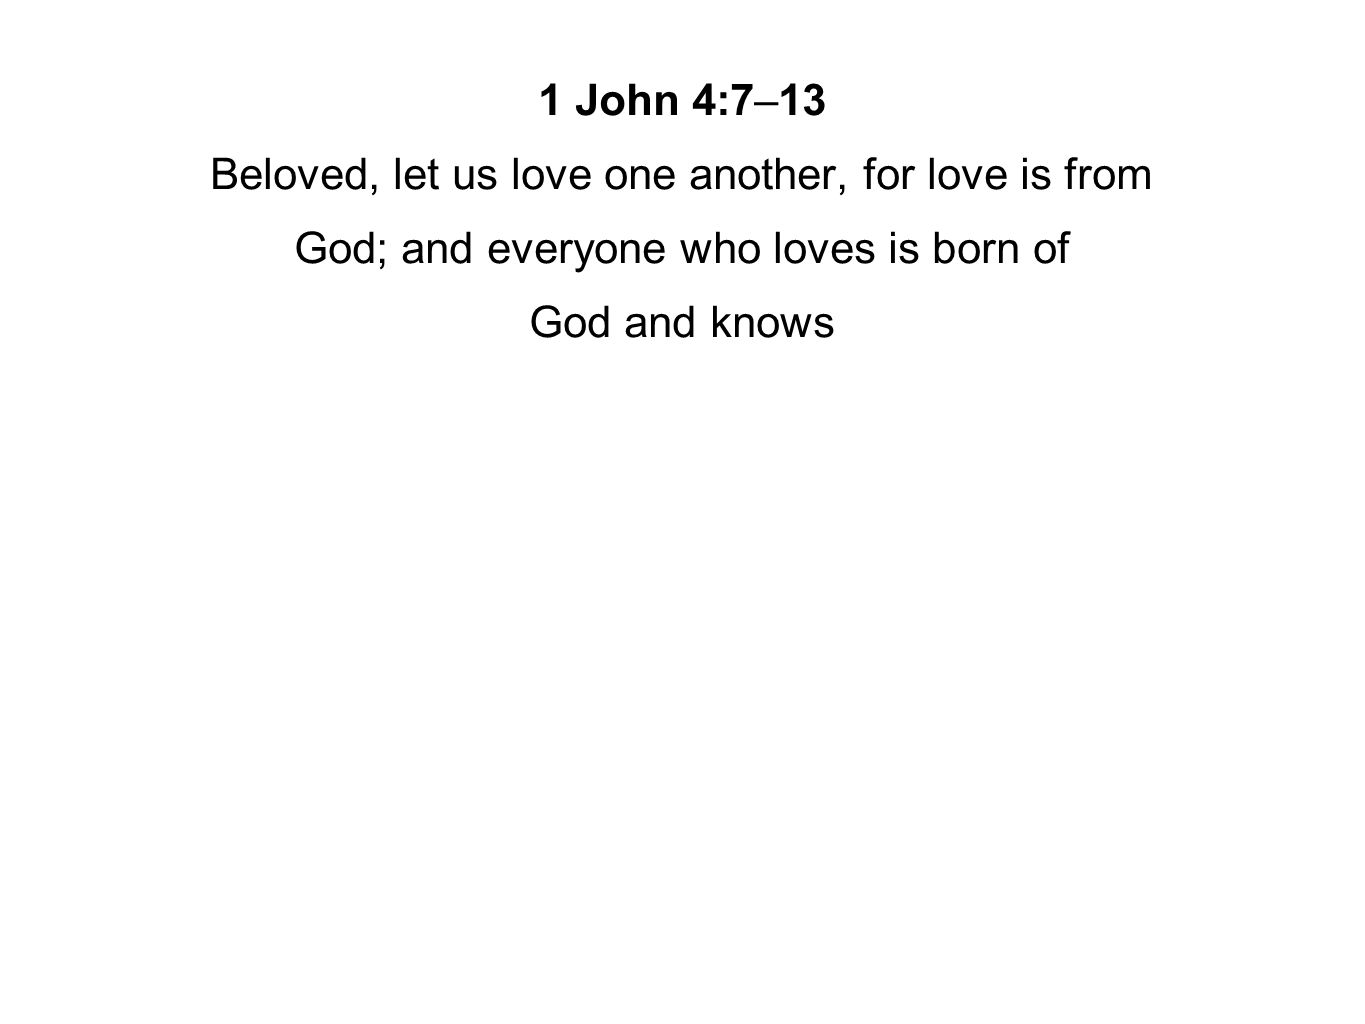 1 John 4:7–13 Beloved, let us love one another, for love is from God; and everyone who loves is born of God and knows